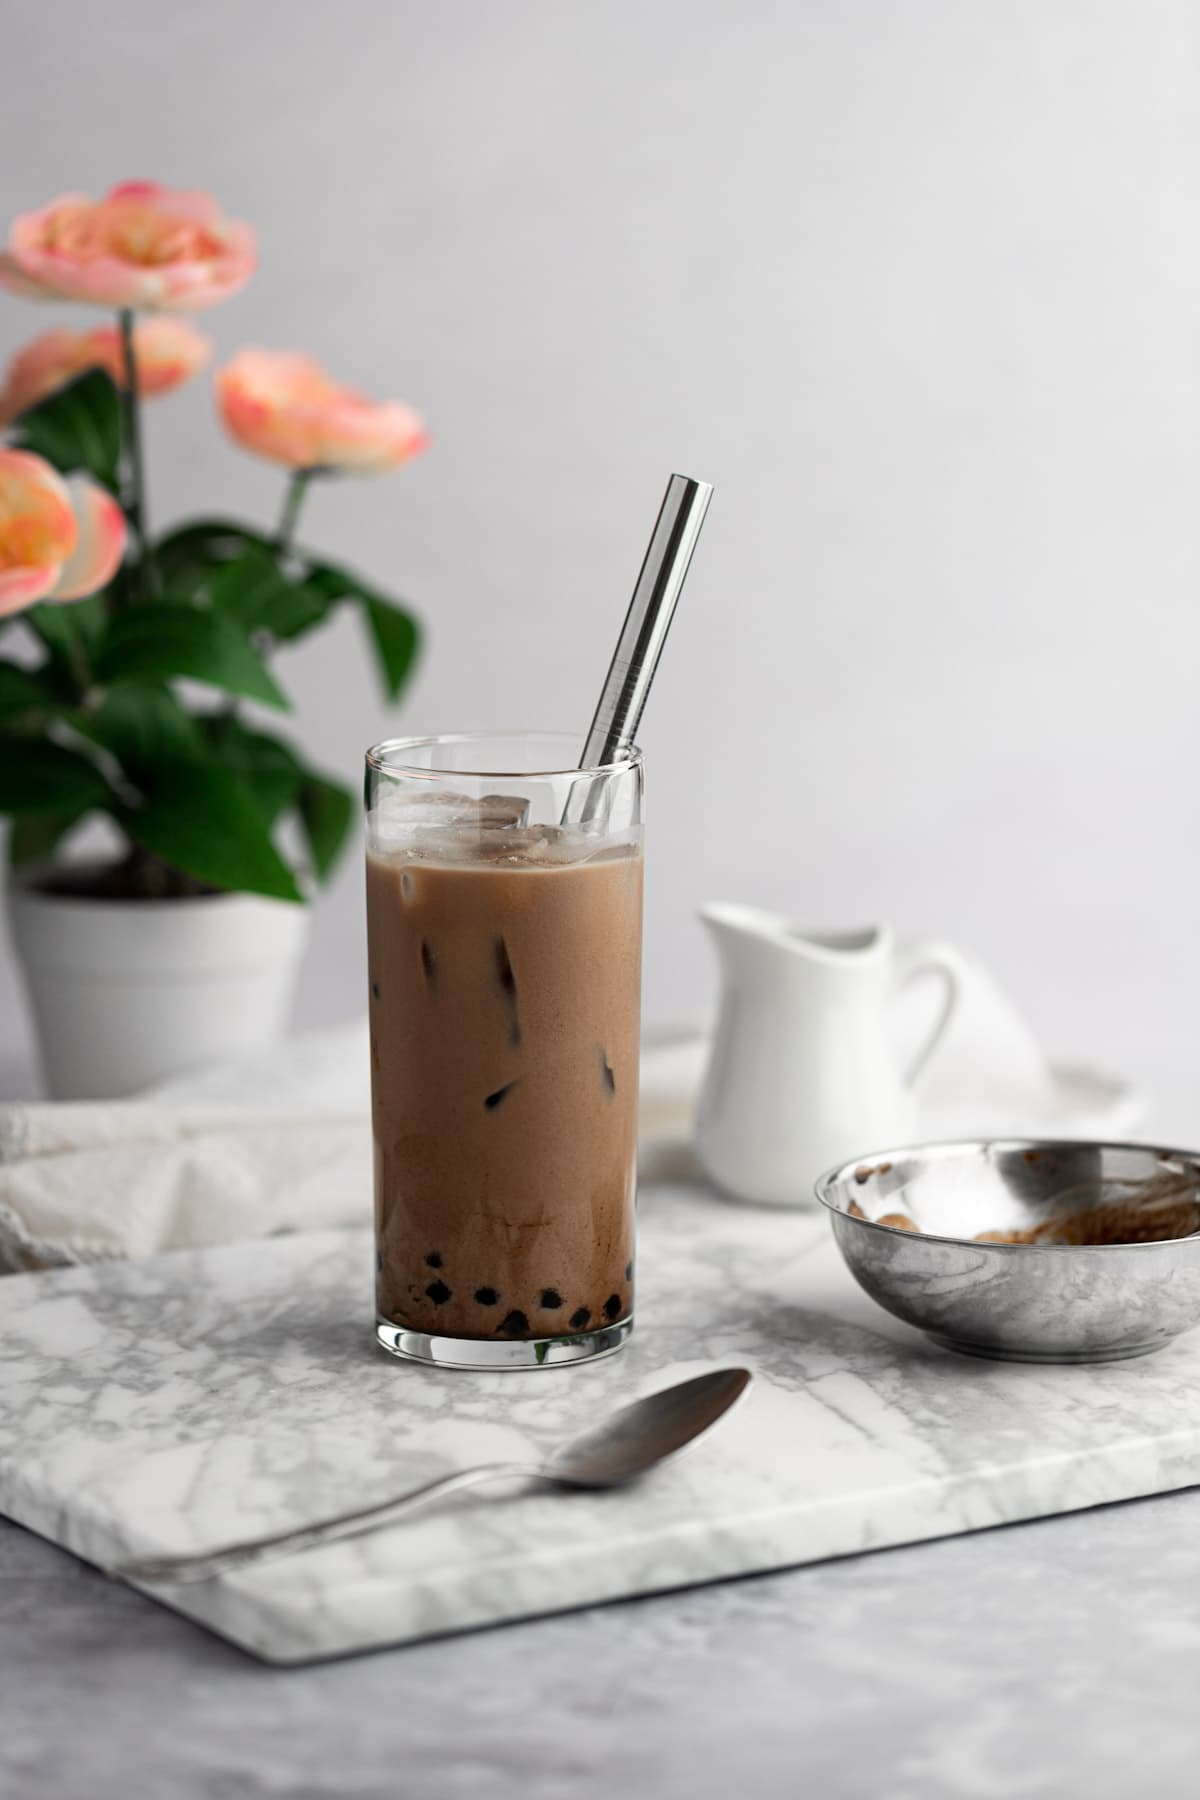 A glass of chocolate milk tea on a grey marble board, next to a metal spoon, with a flower pot in the background.